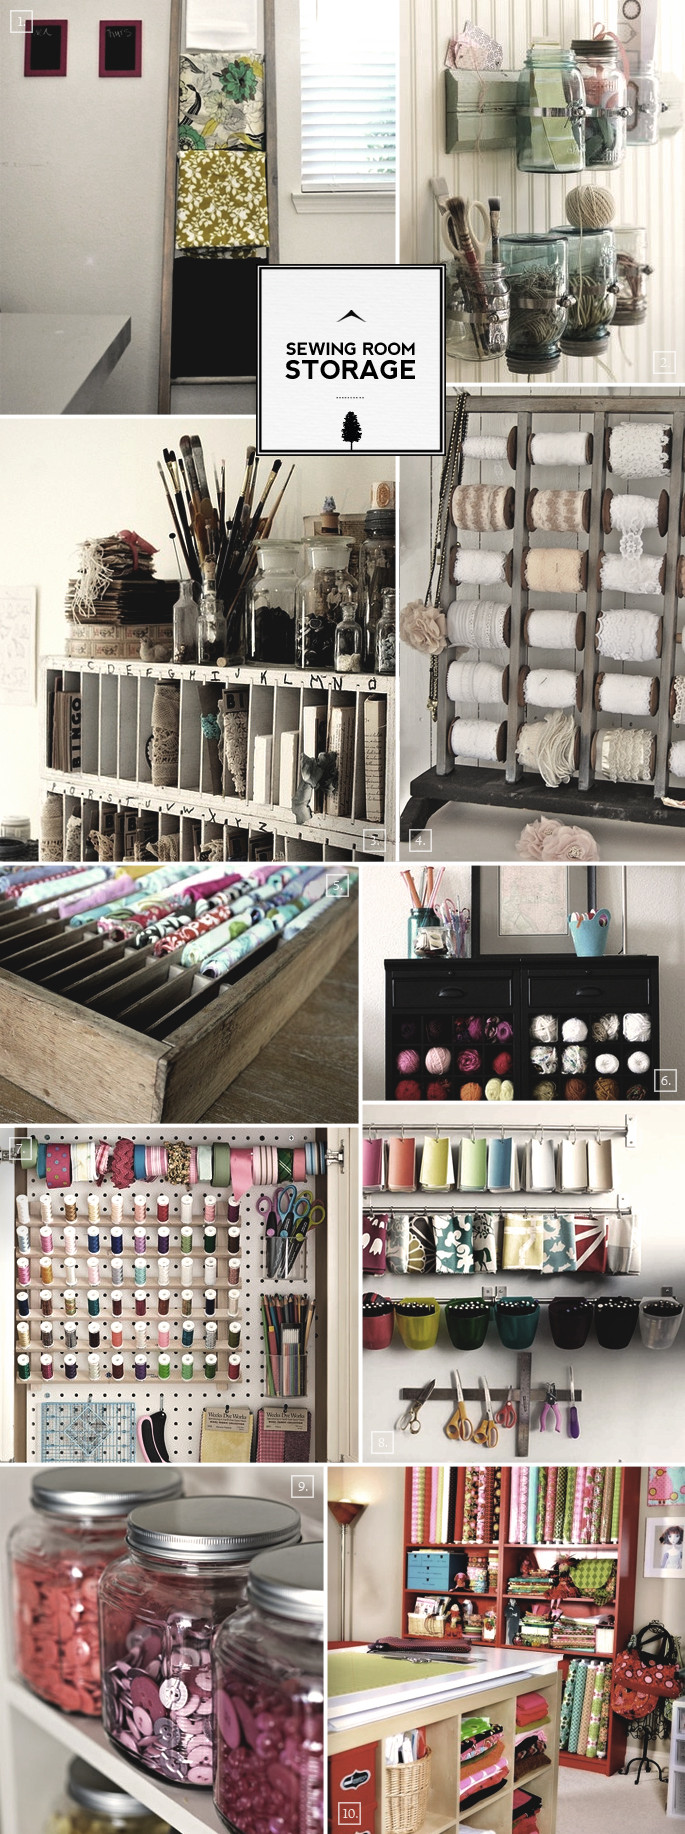 Best ideas about Sewing Storage Ideas . Save or Pin Sewing Room Organization Ideas From Storage to Display Now.